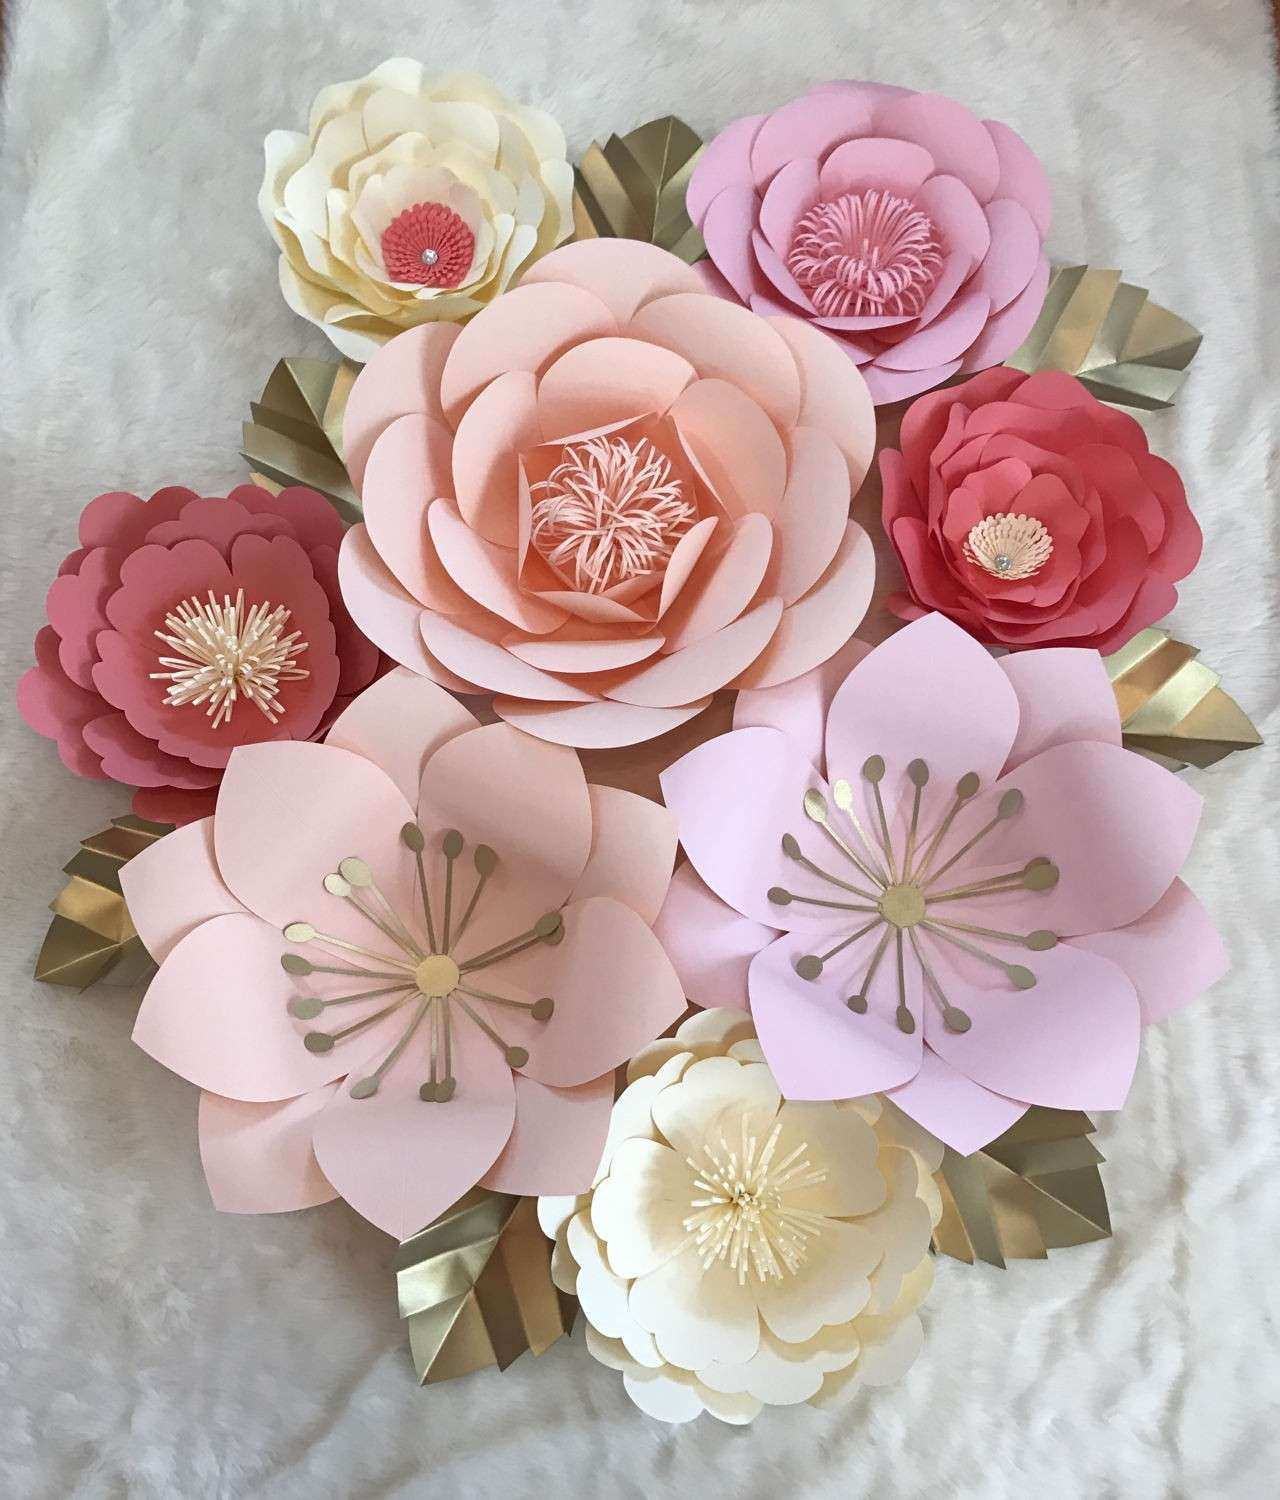 Rose Wall Decor Lovely Pleasing Rose Wall Decor Also Paper Flower Wall